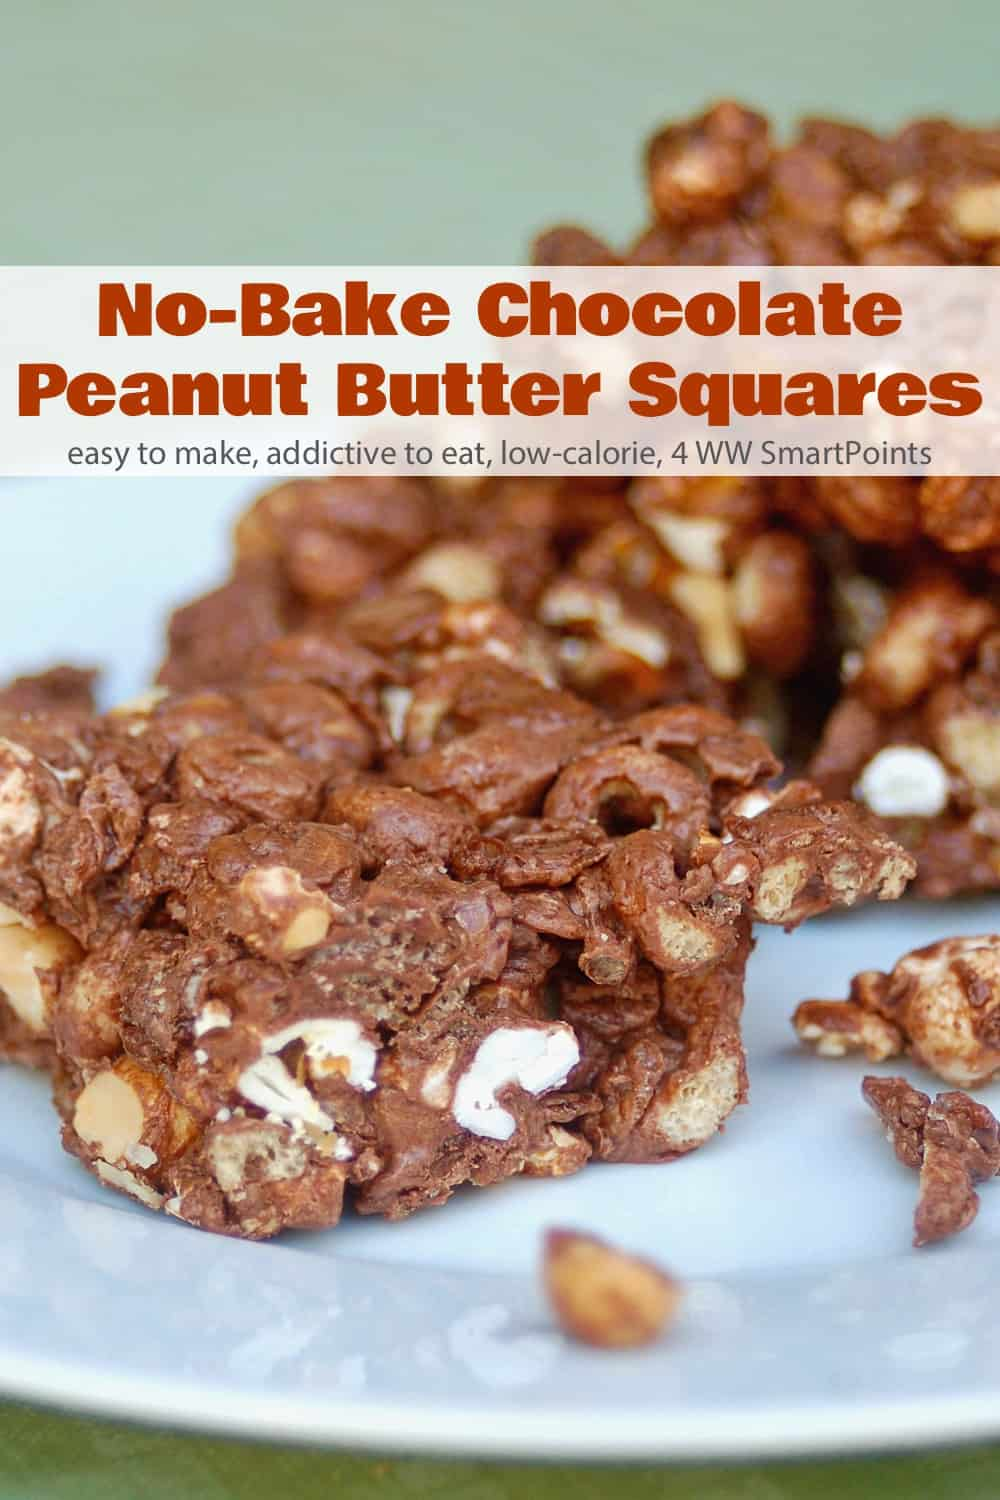 A delicious sweet crunchy, chewy, chocolaty treat the whole family will love, these No Bake Chocolate Peanut Butter Squares are easy to make too! #nobakechocolatepeanutbuttersquares #nobake